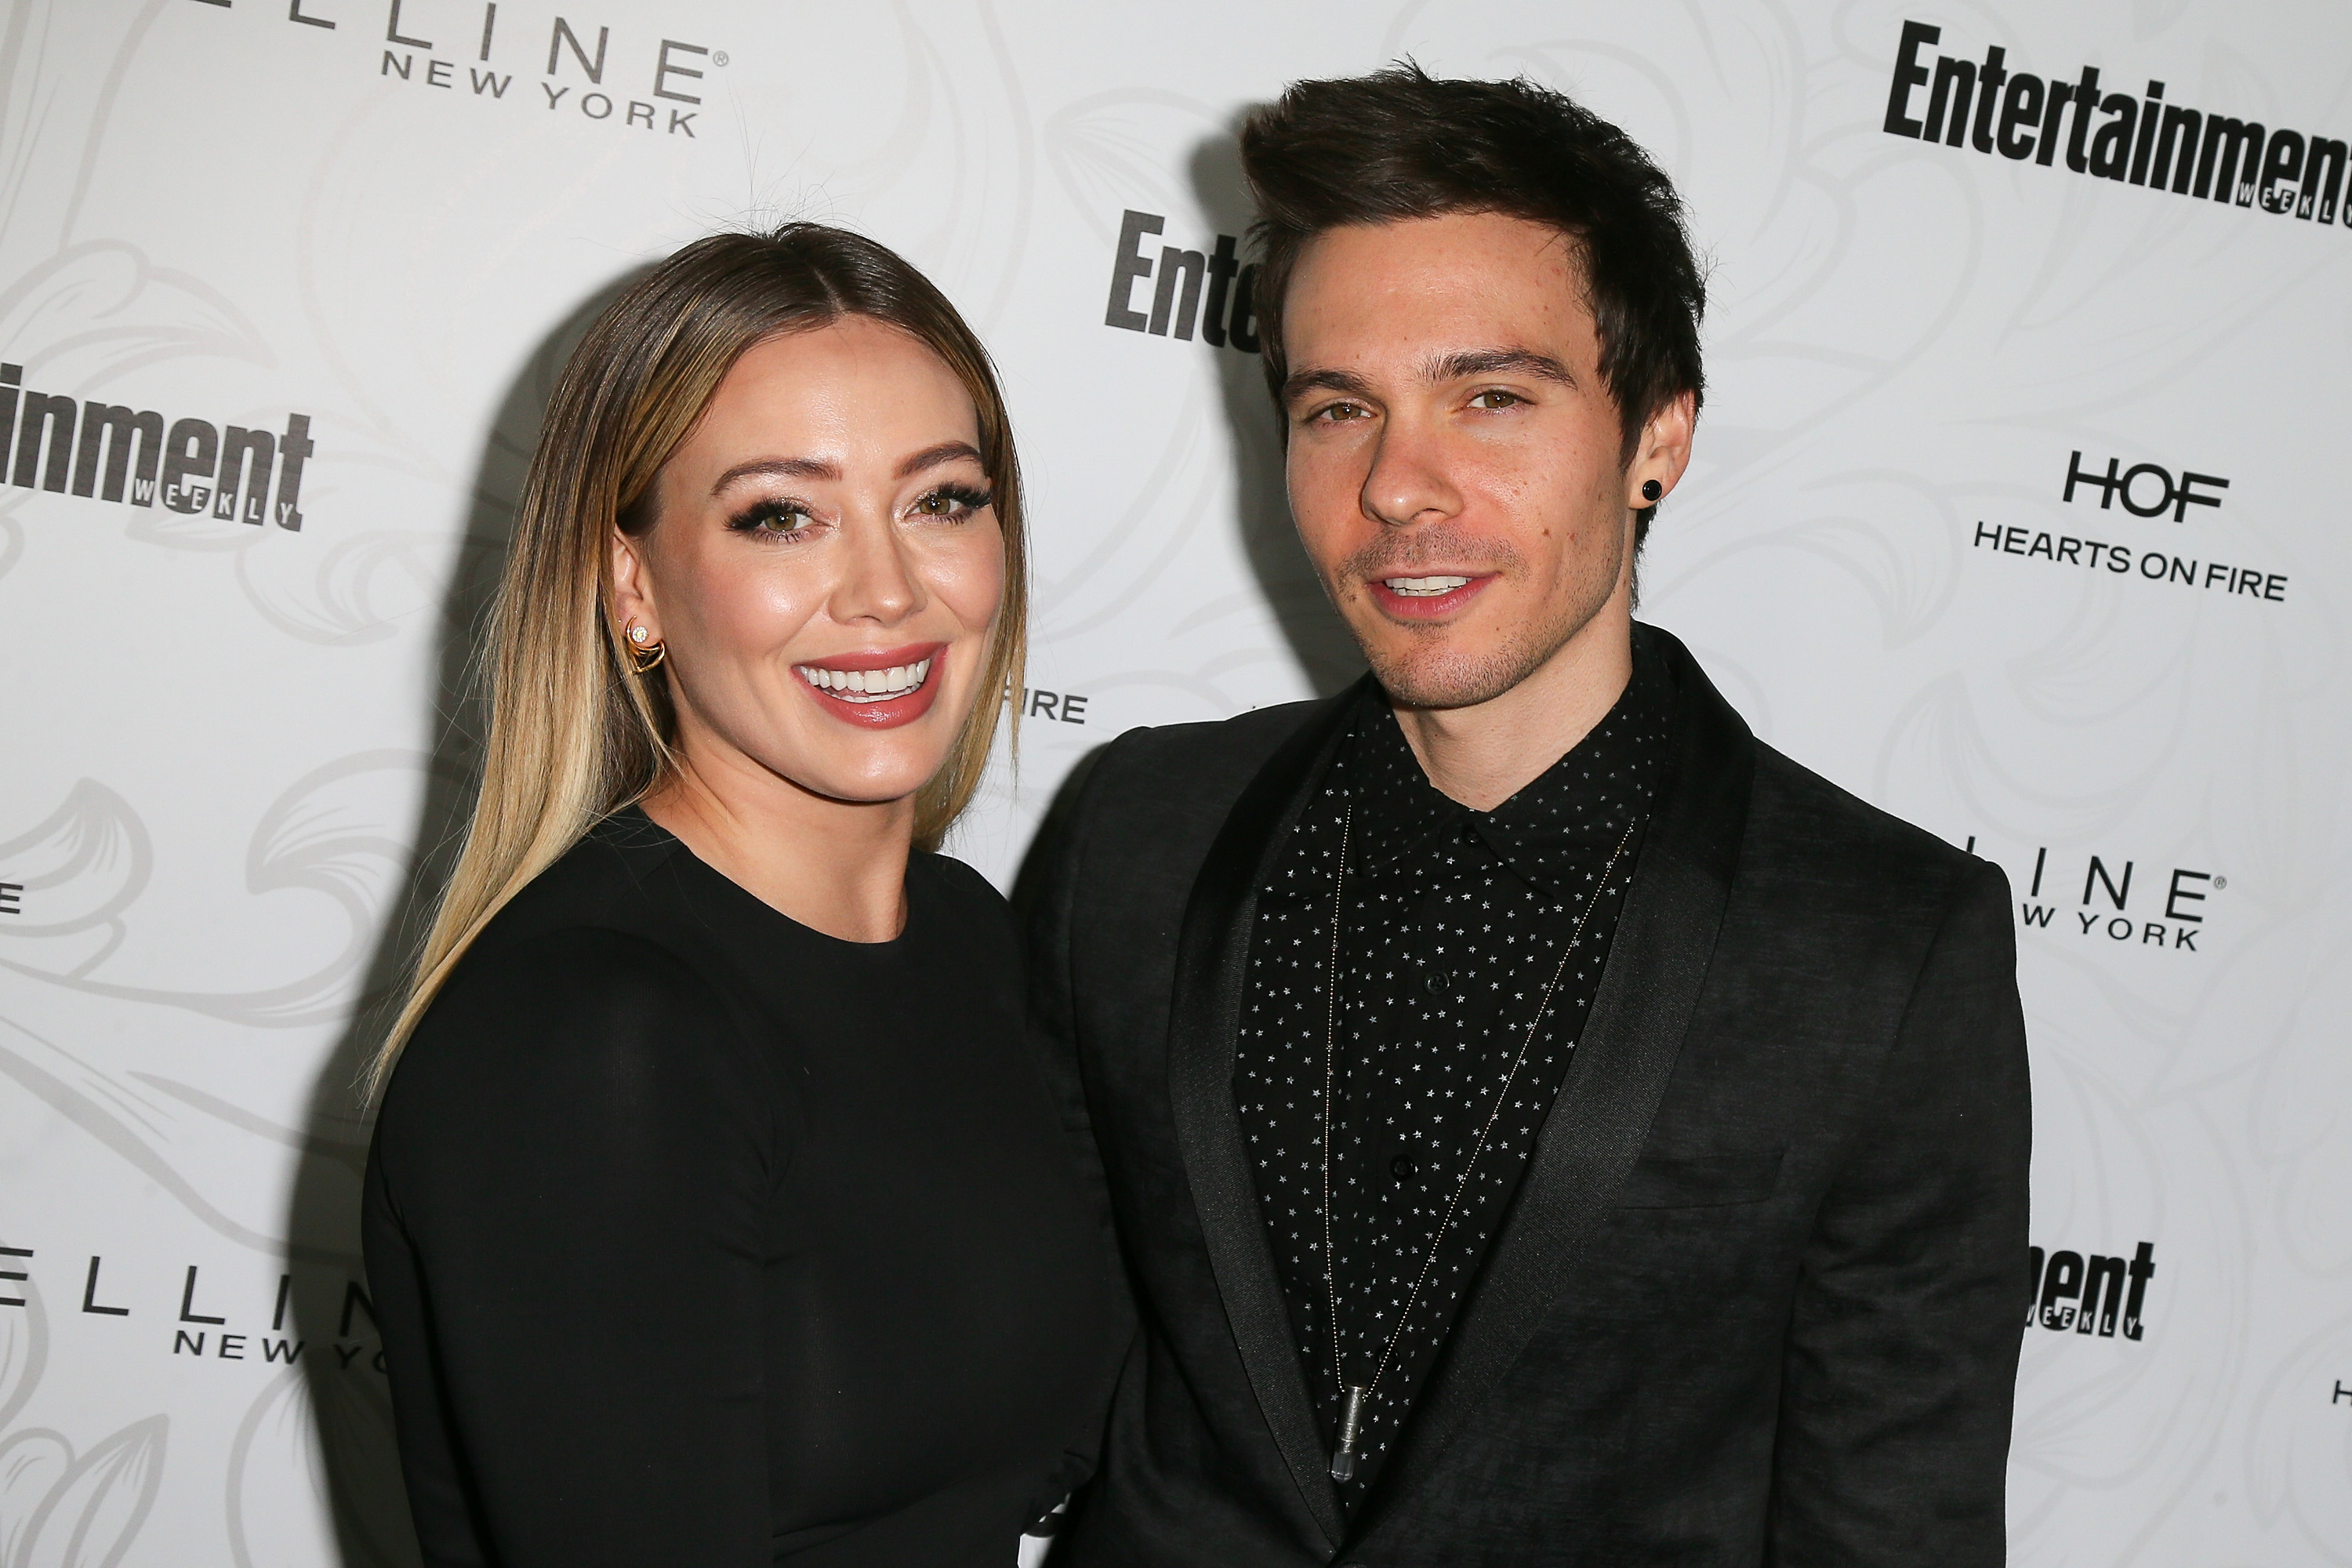 Hilary Duff is expecting a daughter with BF Matthew Koma, and we really hope they name her Miranda